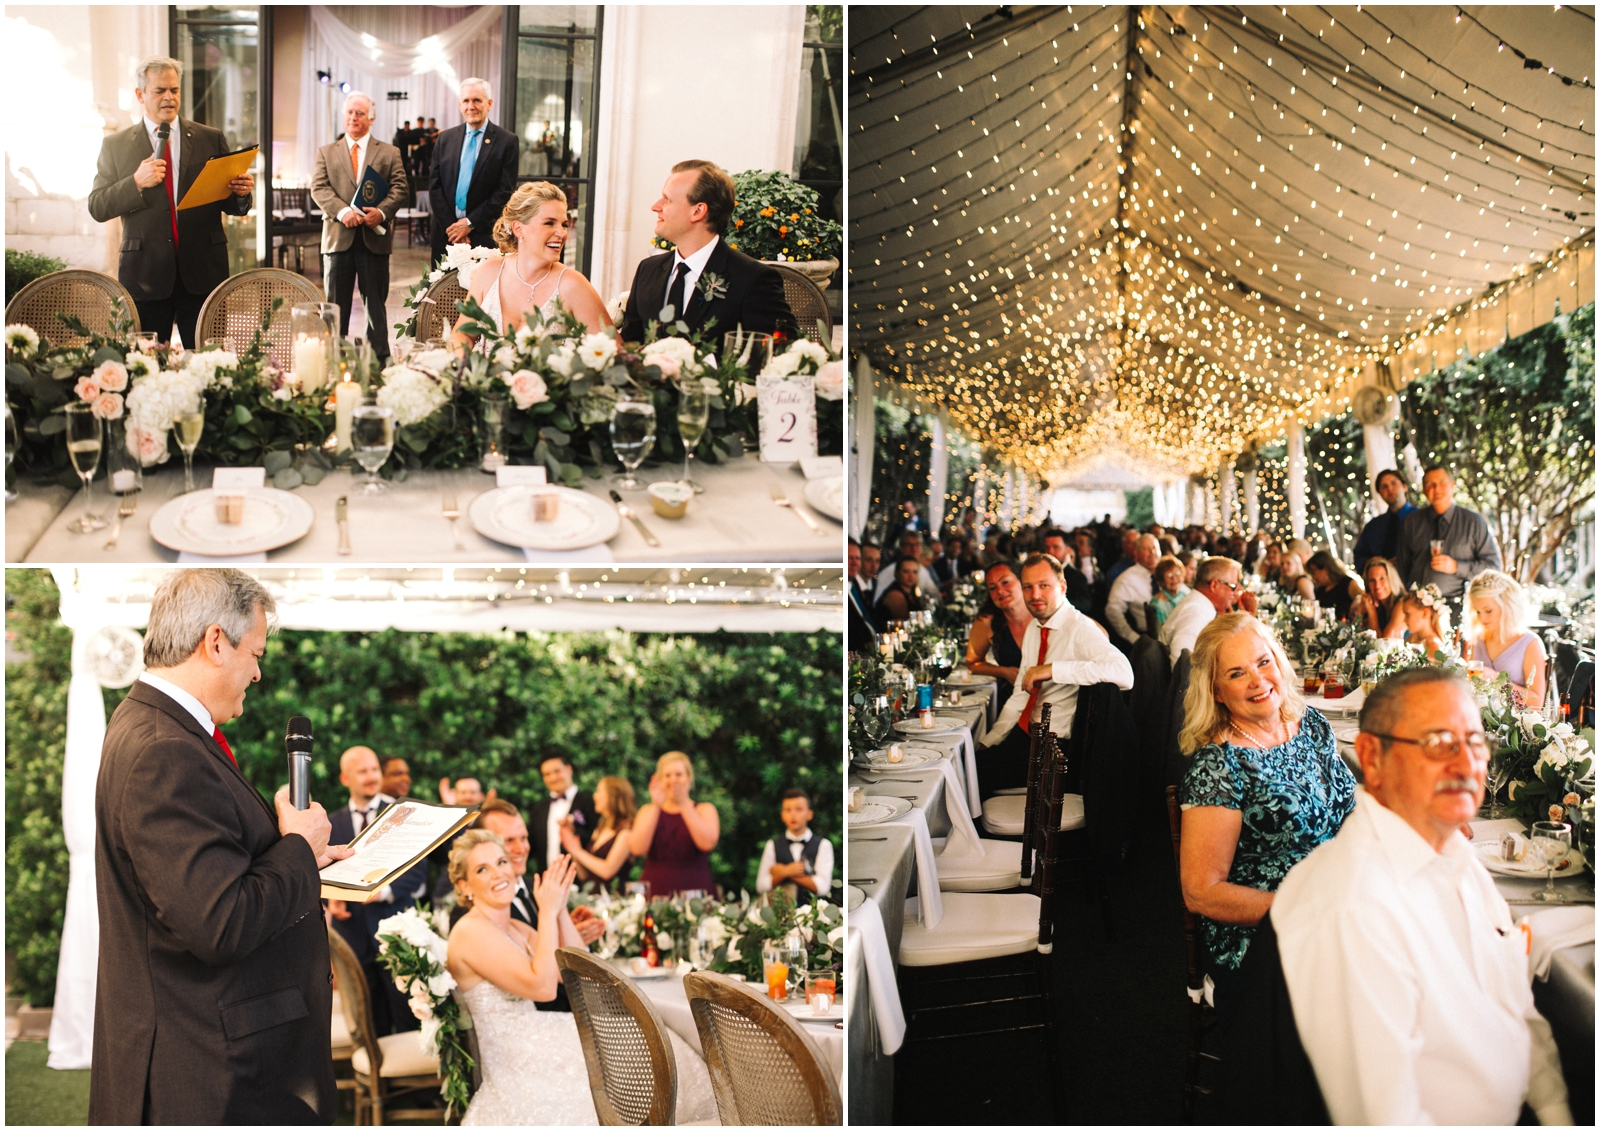 Austin Wedding Planner. String lights and greenery wedding